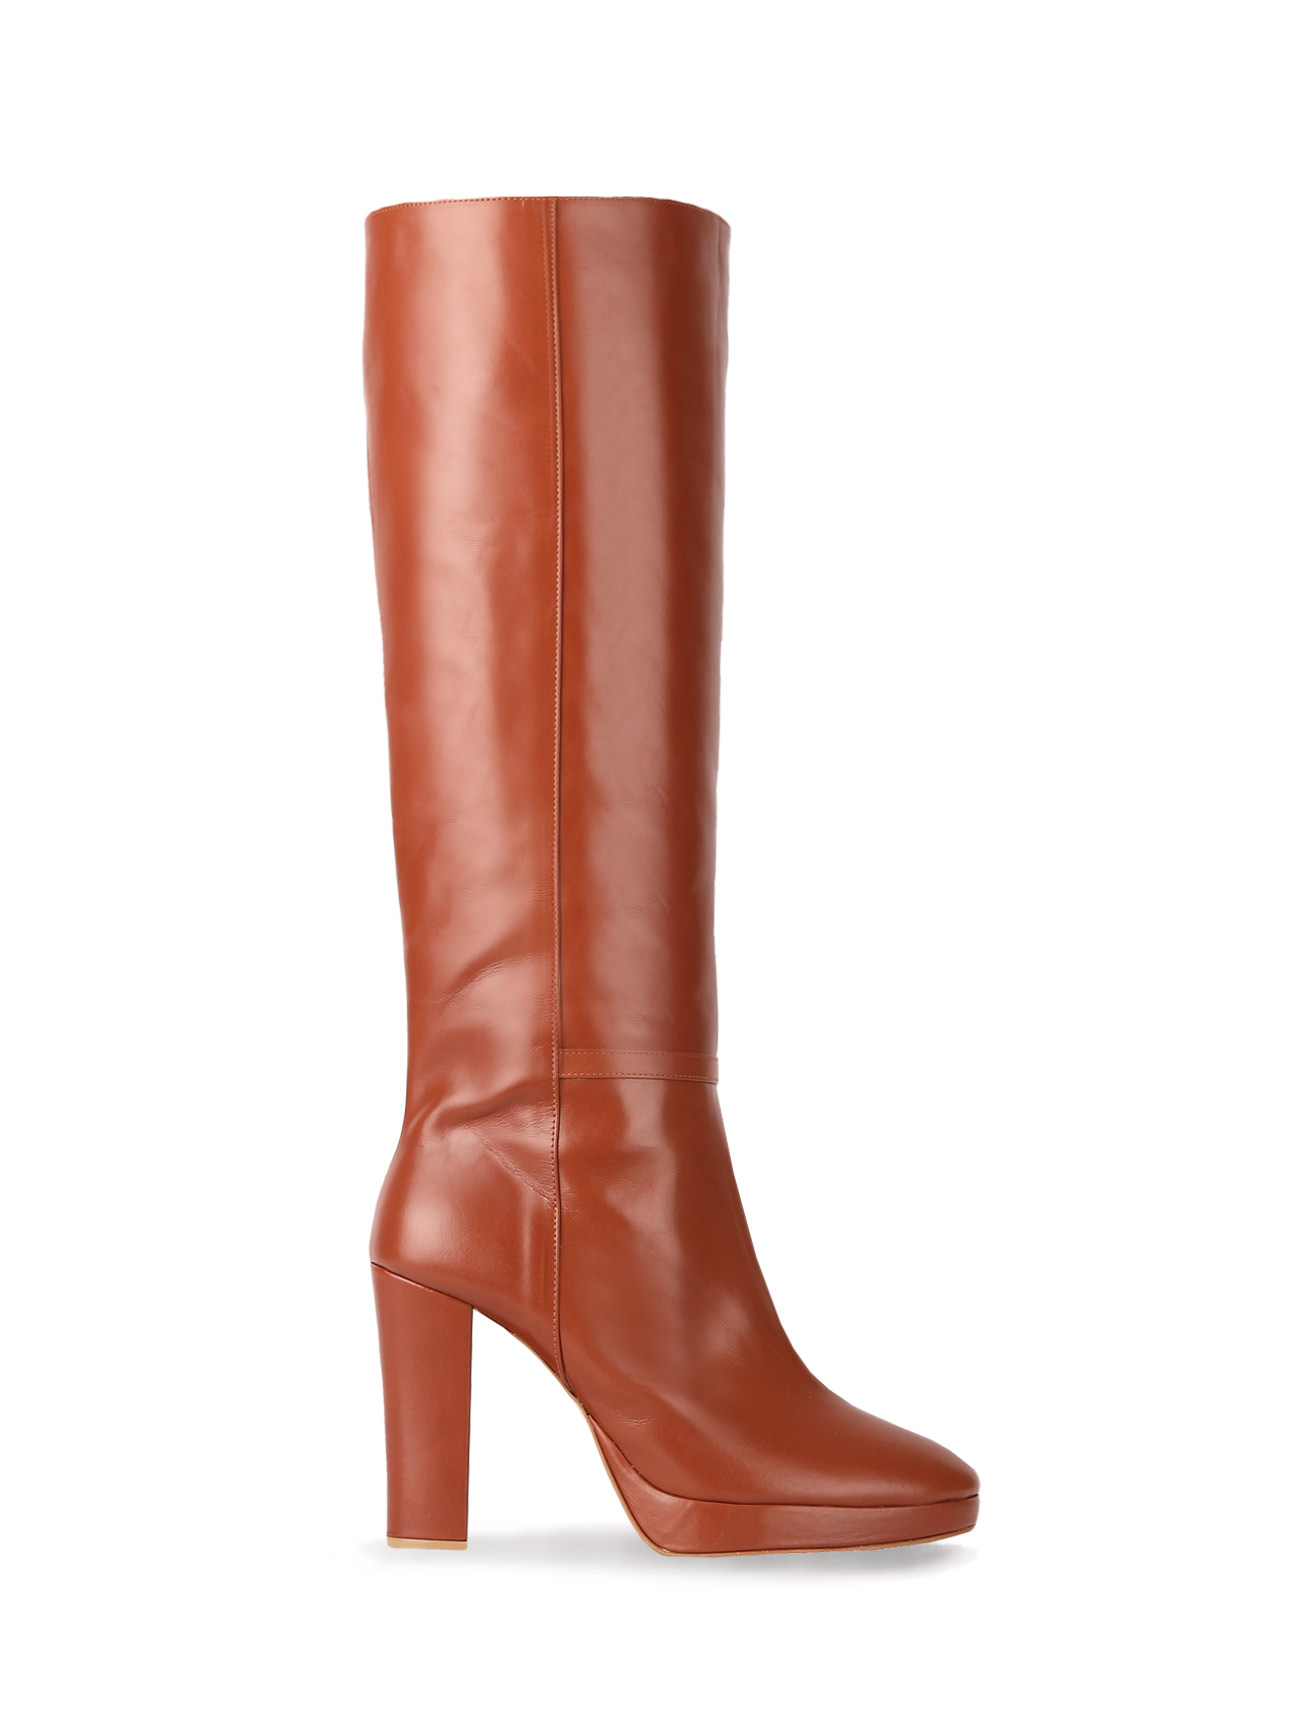 70' KATE LEATHER KNEE BOOTS (10cm) - AMBER BROWN